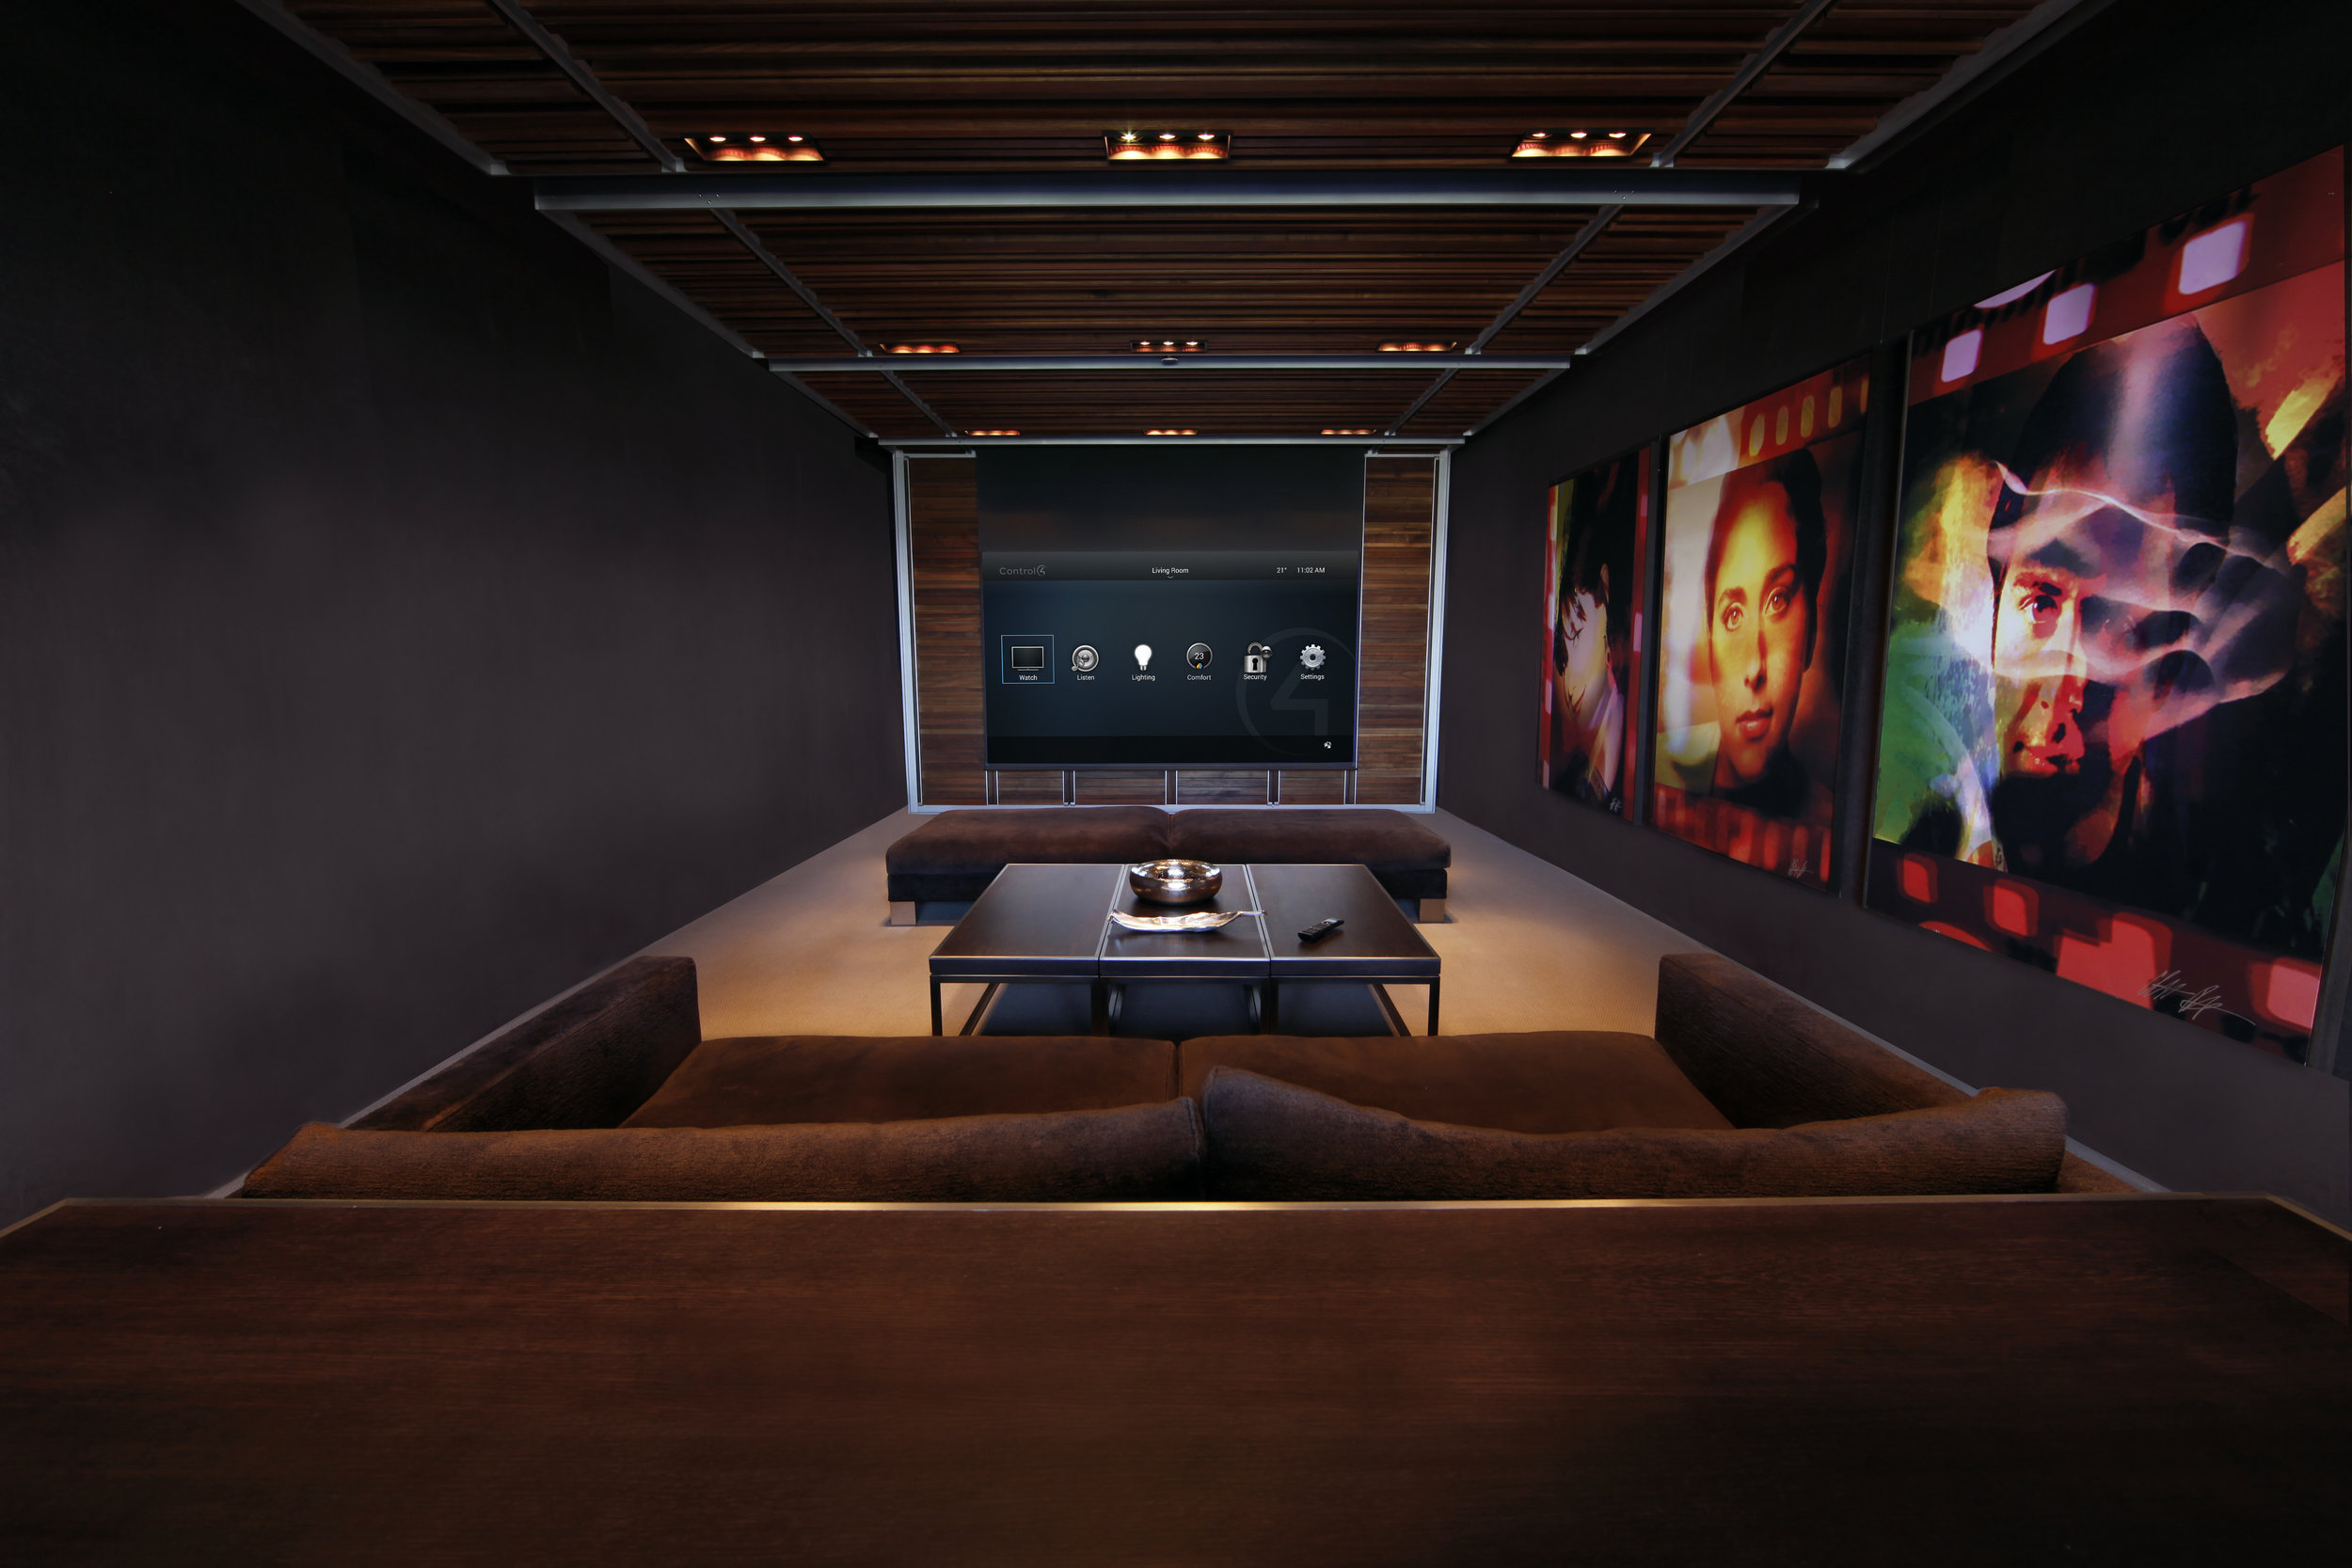 Home_Cinema_Apartment_Control4_navigator_Epson_Projector_Brown_leather_seats_Onslow_Gardens_SW7